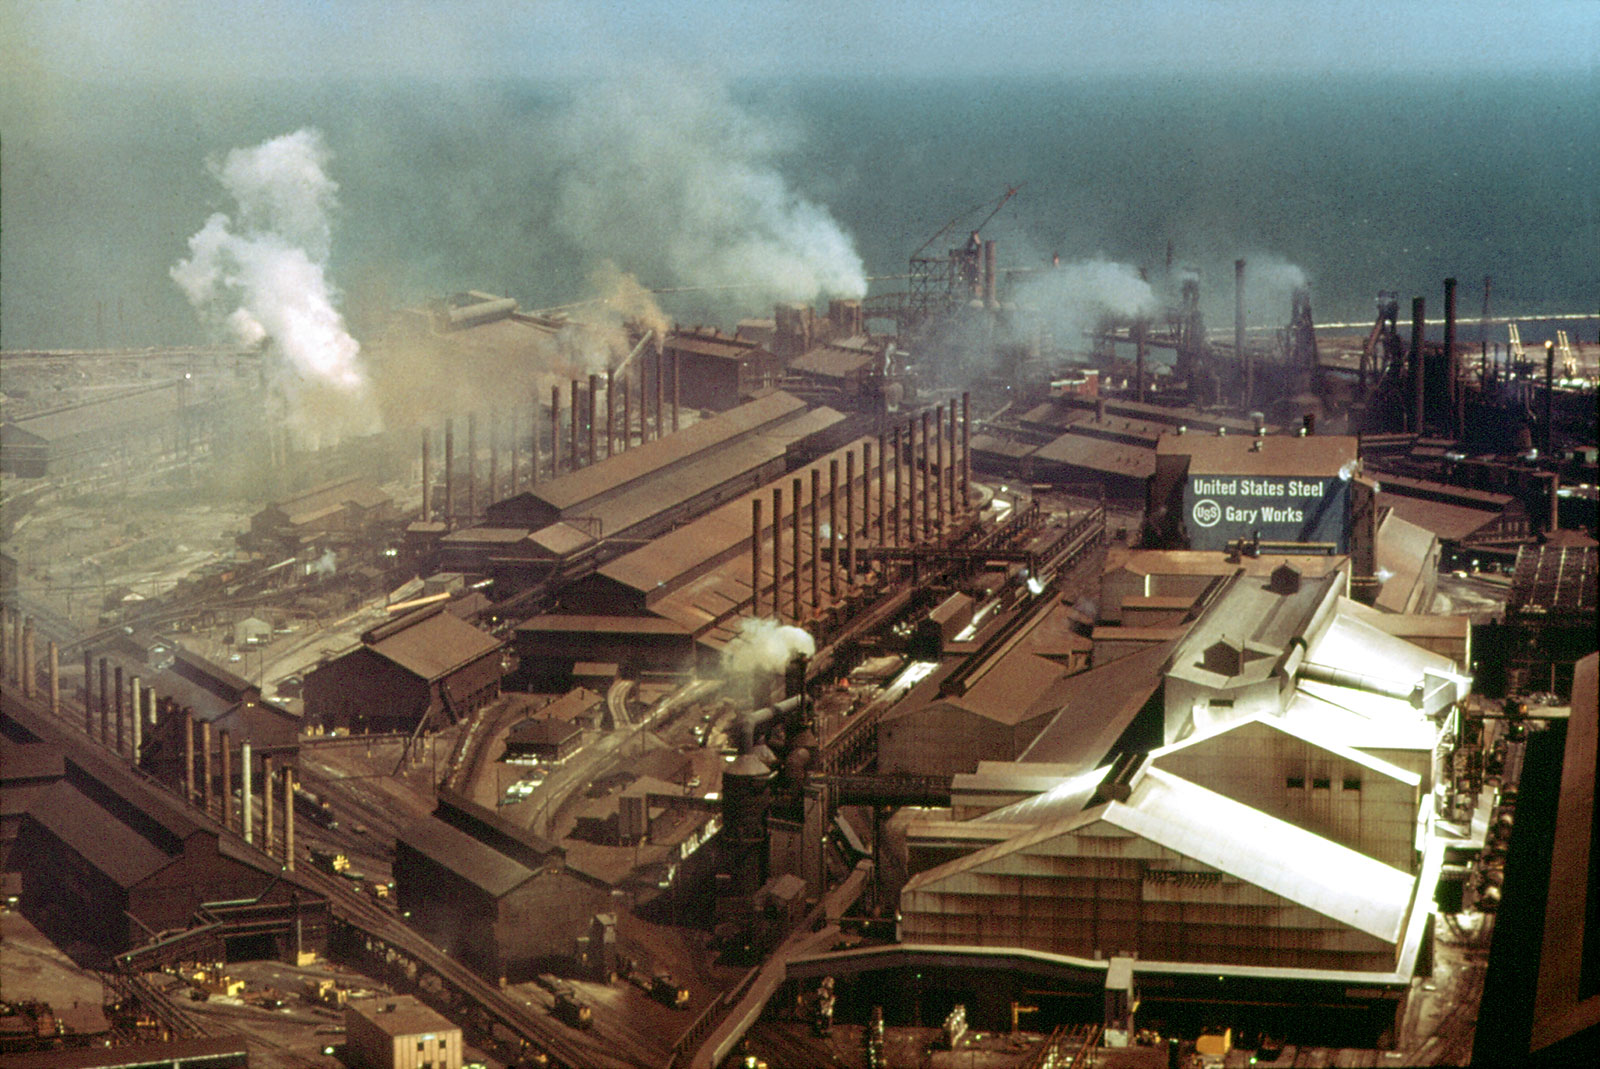 Gary Works steel mill in 1973